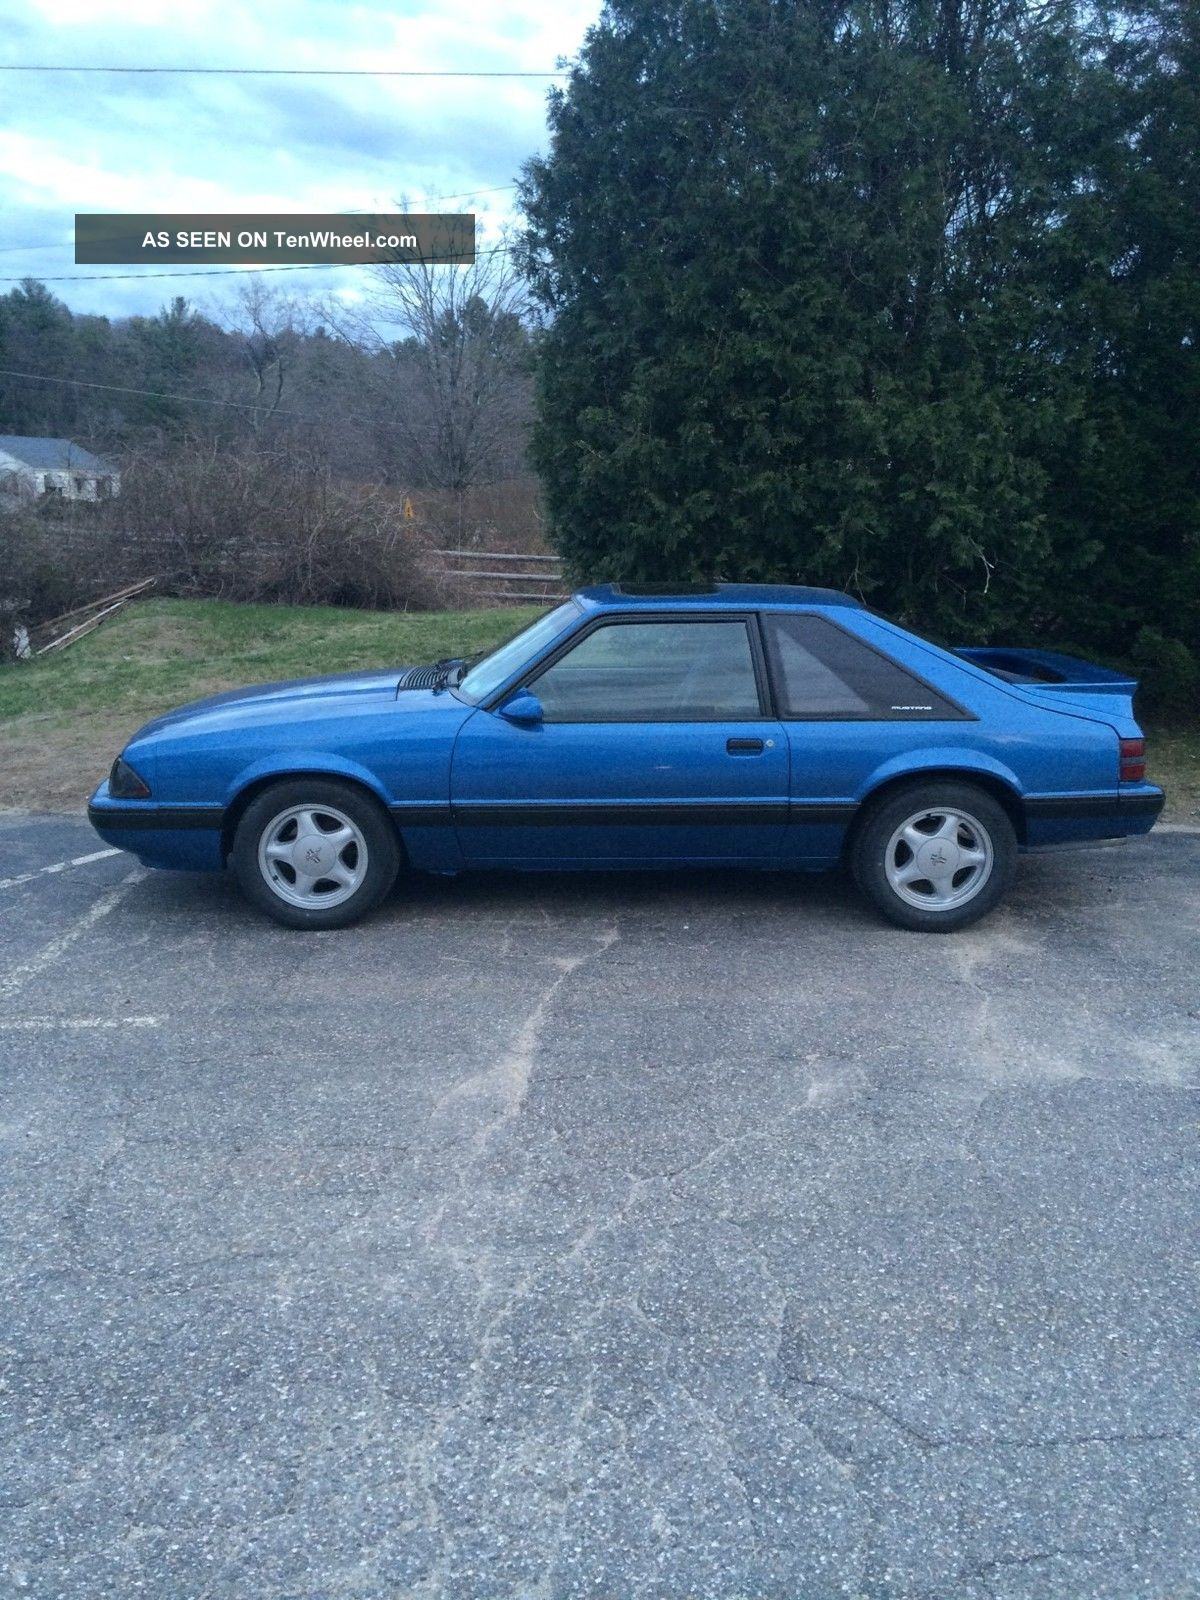 1988 Ford Mustang Lx Hatchback 2 Door 5 0l